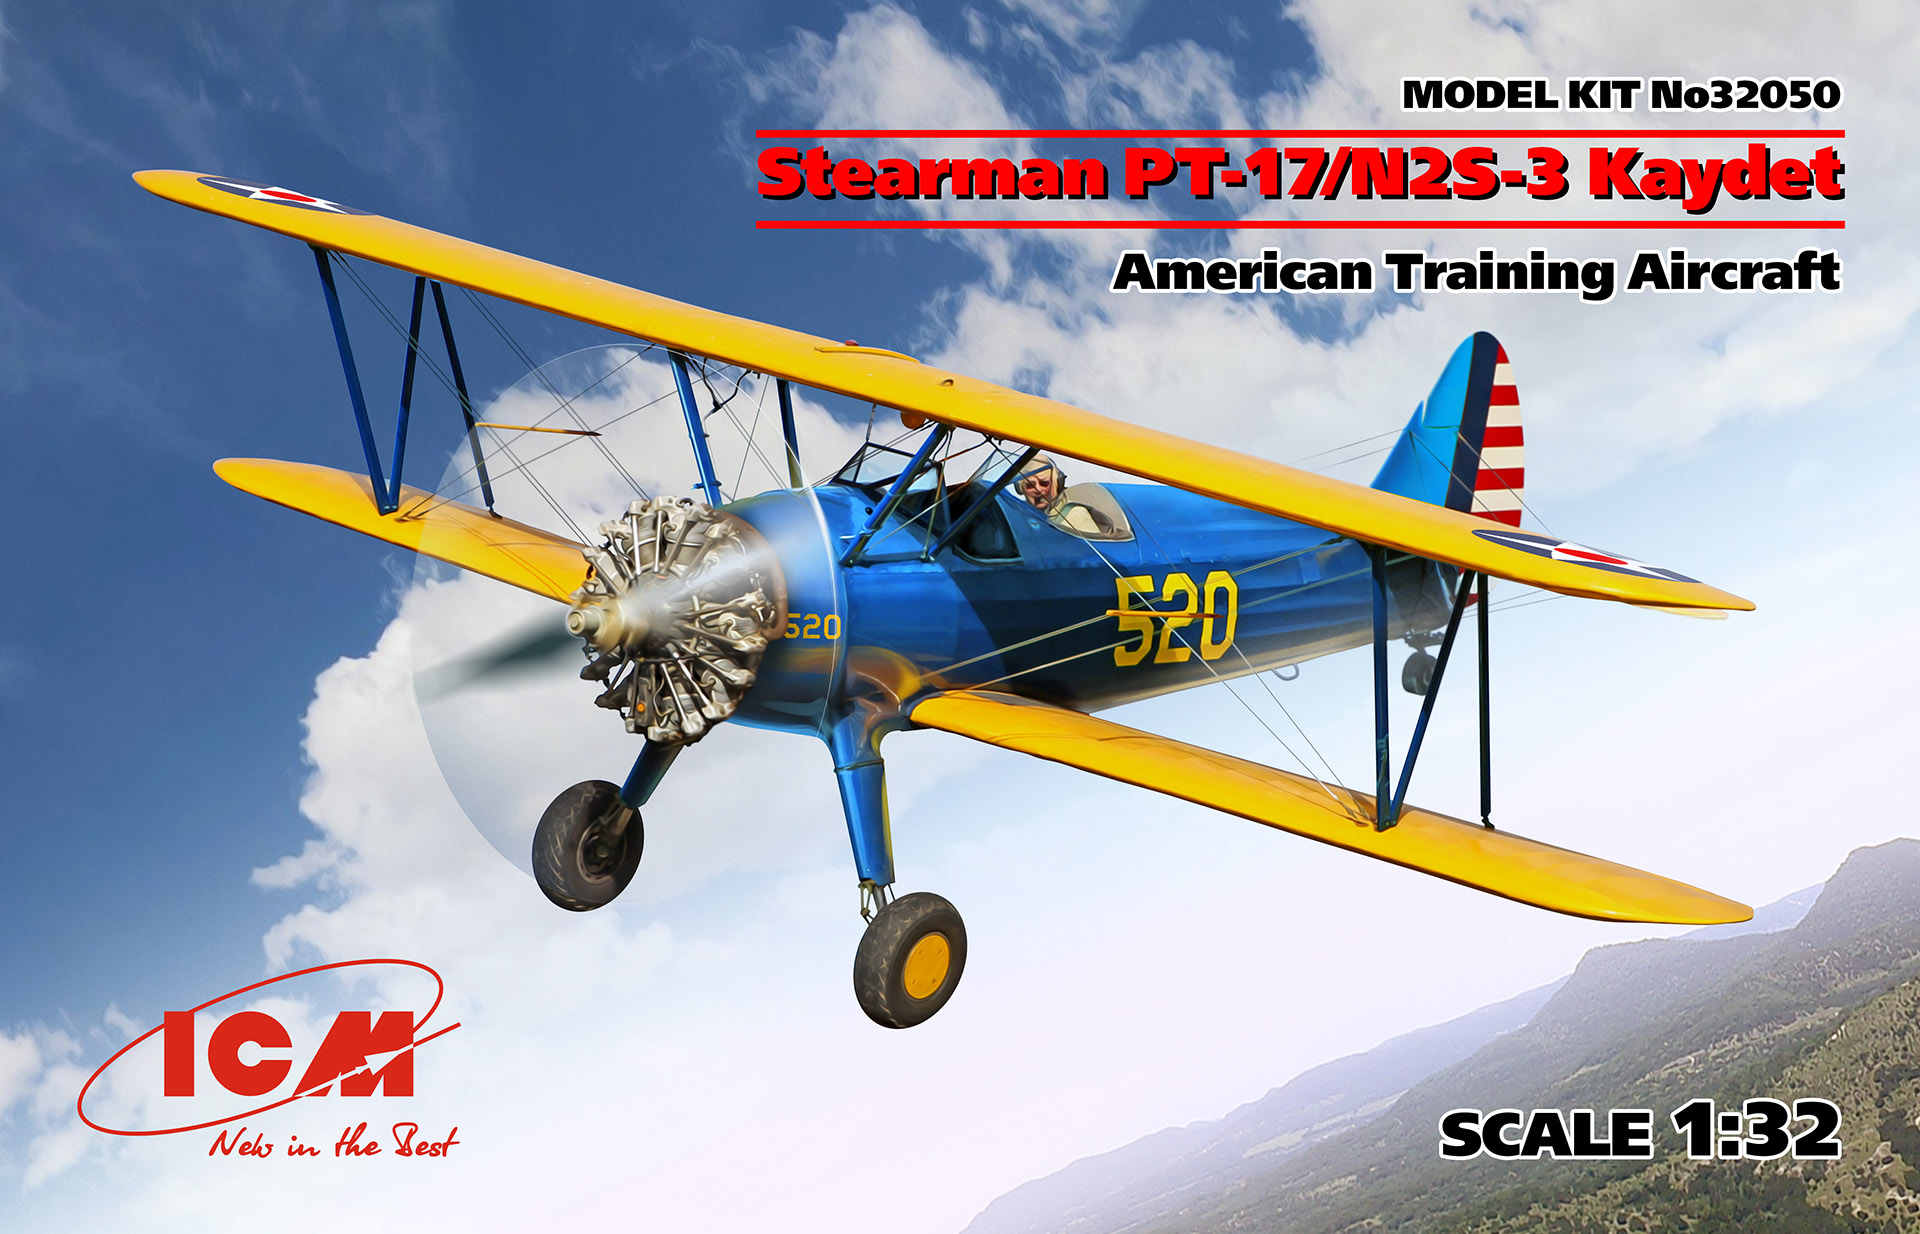 ICM Stearman PT-17/N2S-3 Kaydet , American Training Aircraft 1/32 Scale